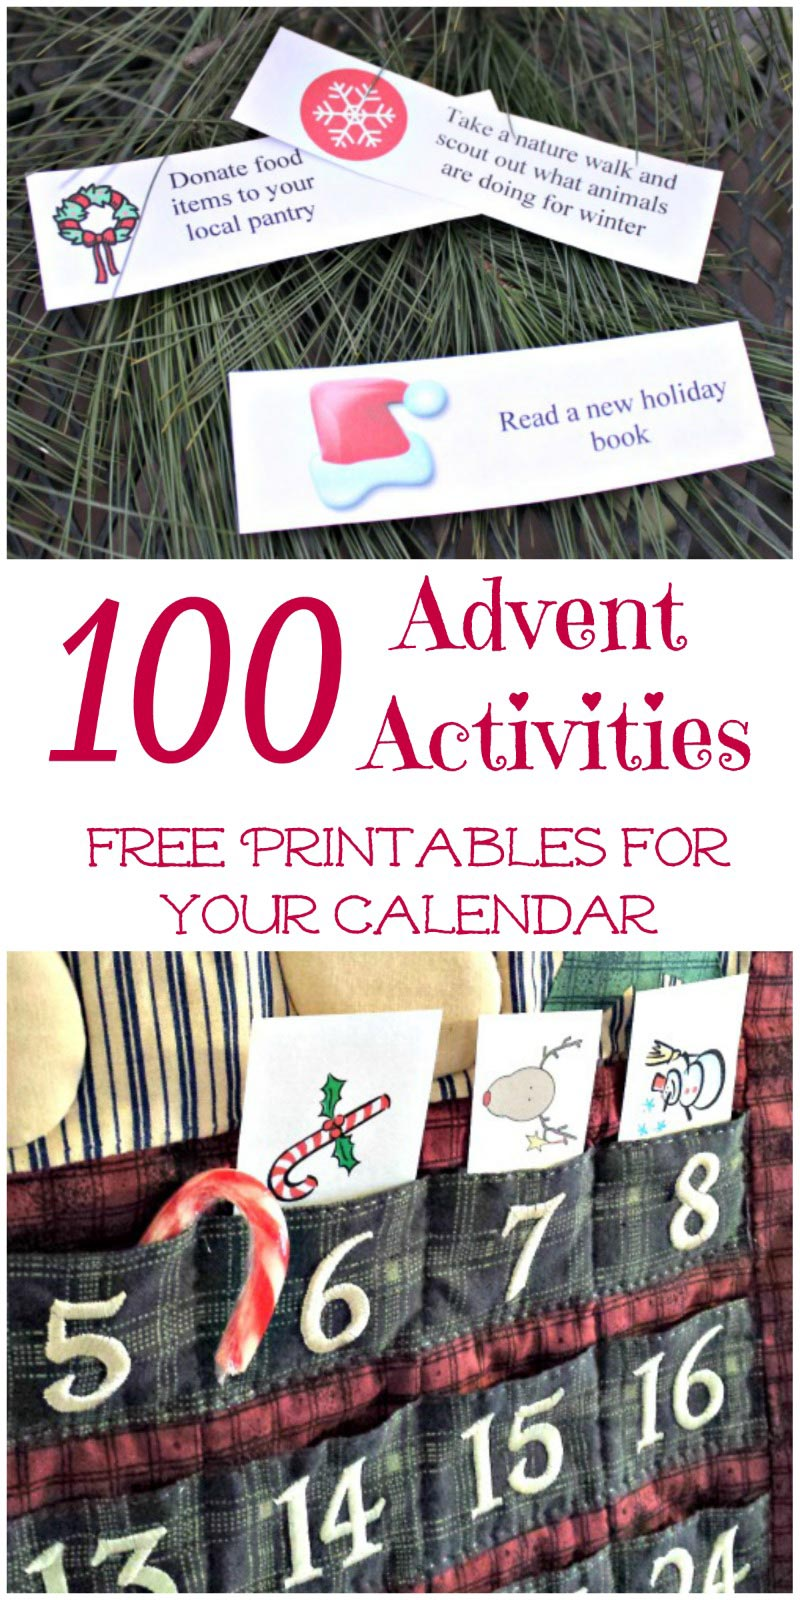 Advent calendar activity ideas - fillers and family fun